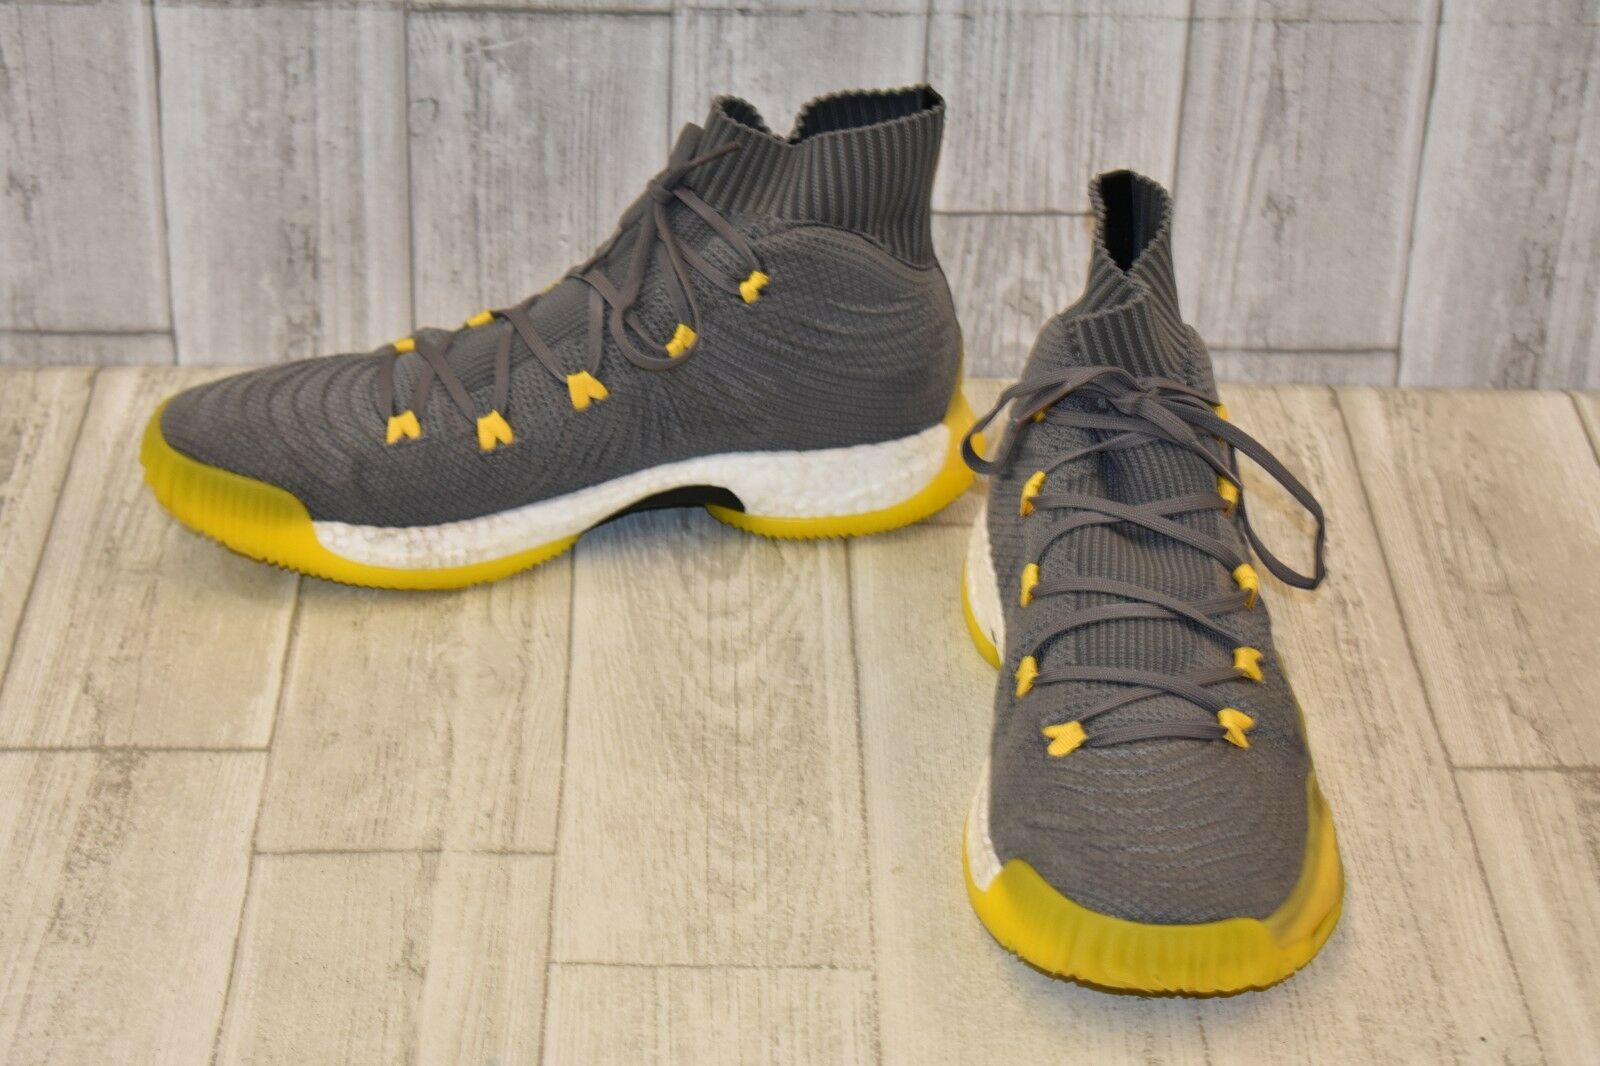 best sneakers 7cb1b e4379 ... canada adidas crazy explosive primeknit basketball shoes shoes  basketball uomo size 13 gray yellow c484b4 15bbe